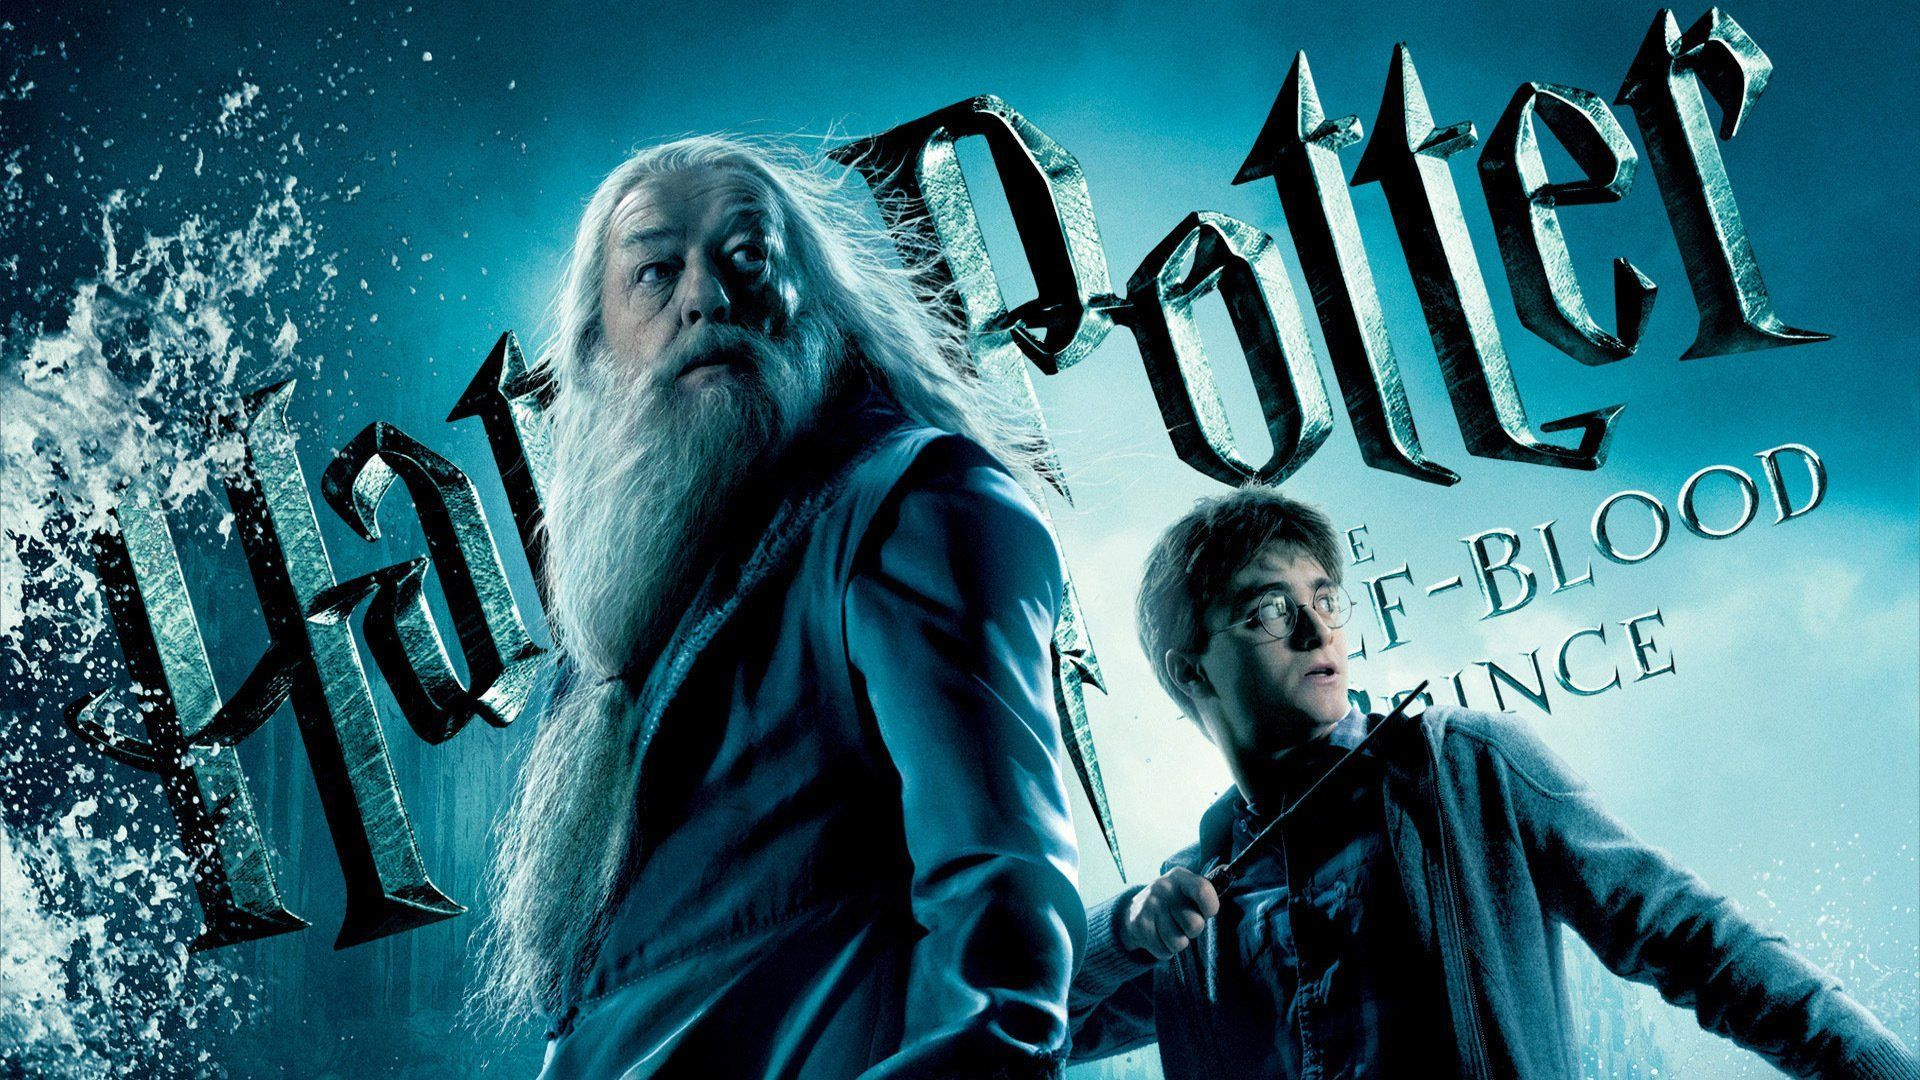 1920x1080 Harry Potter Spells Wallpaper Lovely Harry Potter and Dumbledore ...